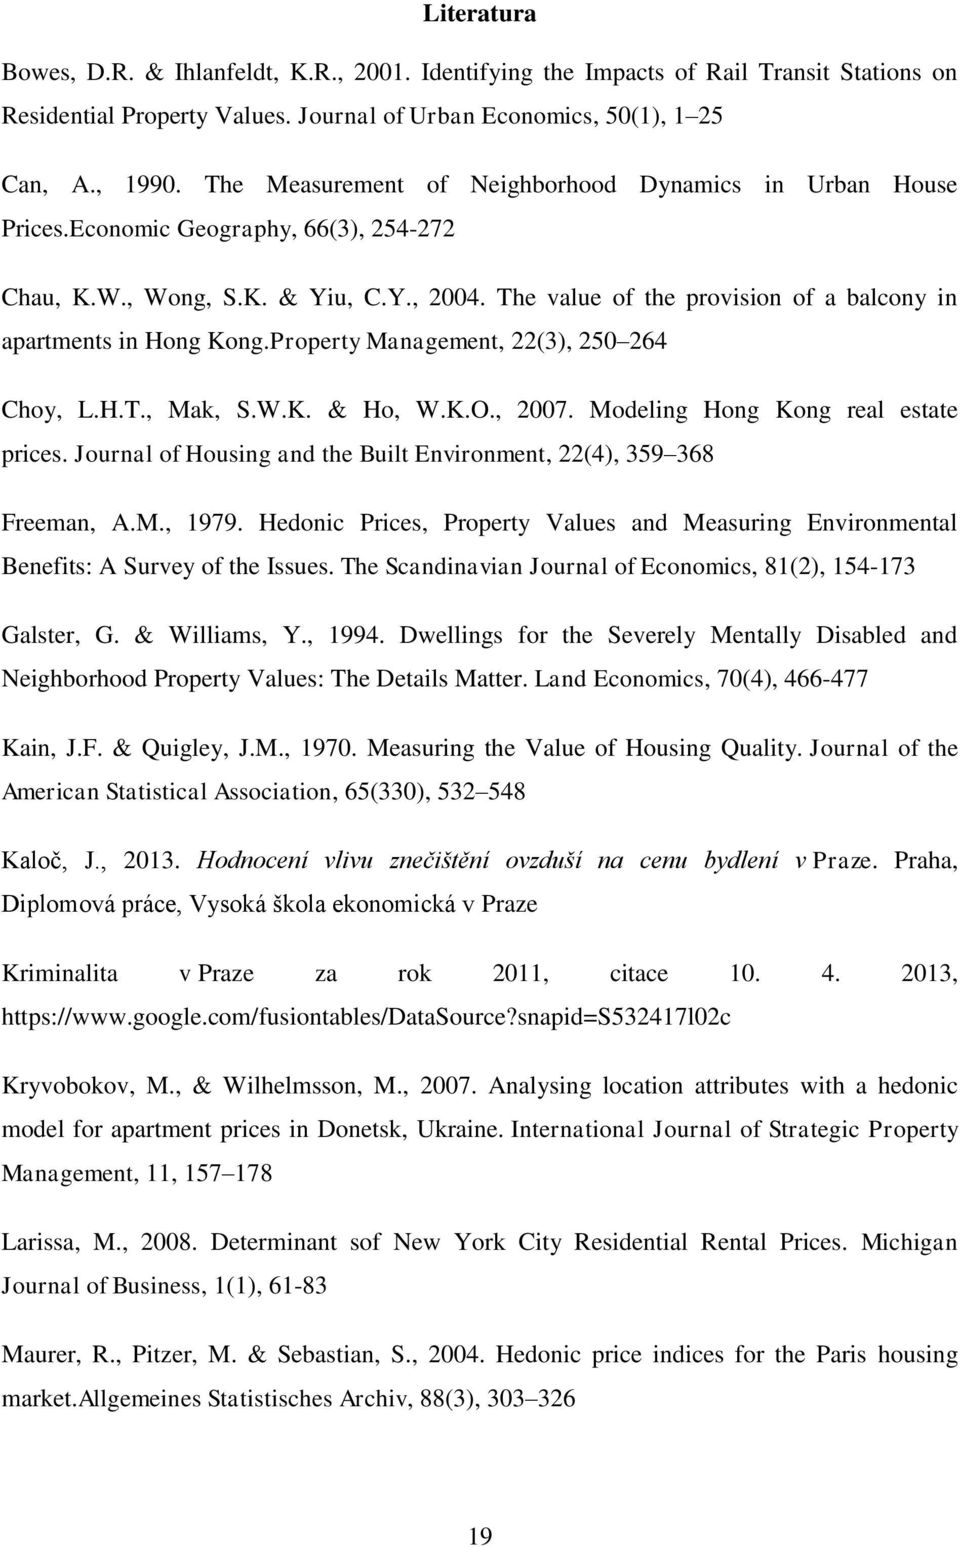 The value of the provision of a balcony in apartments in Hong Kong.Property Management, 22(3), 250 264 Choy, L.H.T., Mak, S.W.K. & Ho, W.K.O., 2007. Modeling Hong Kong real estate prices.